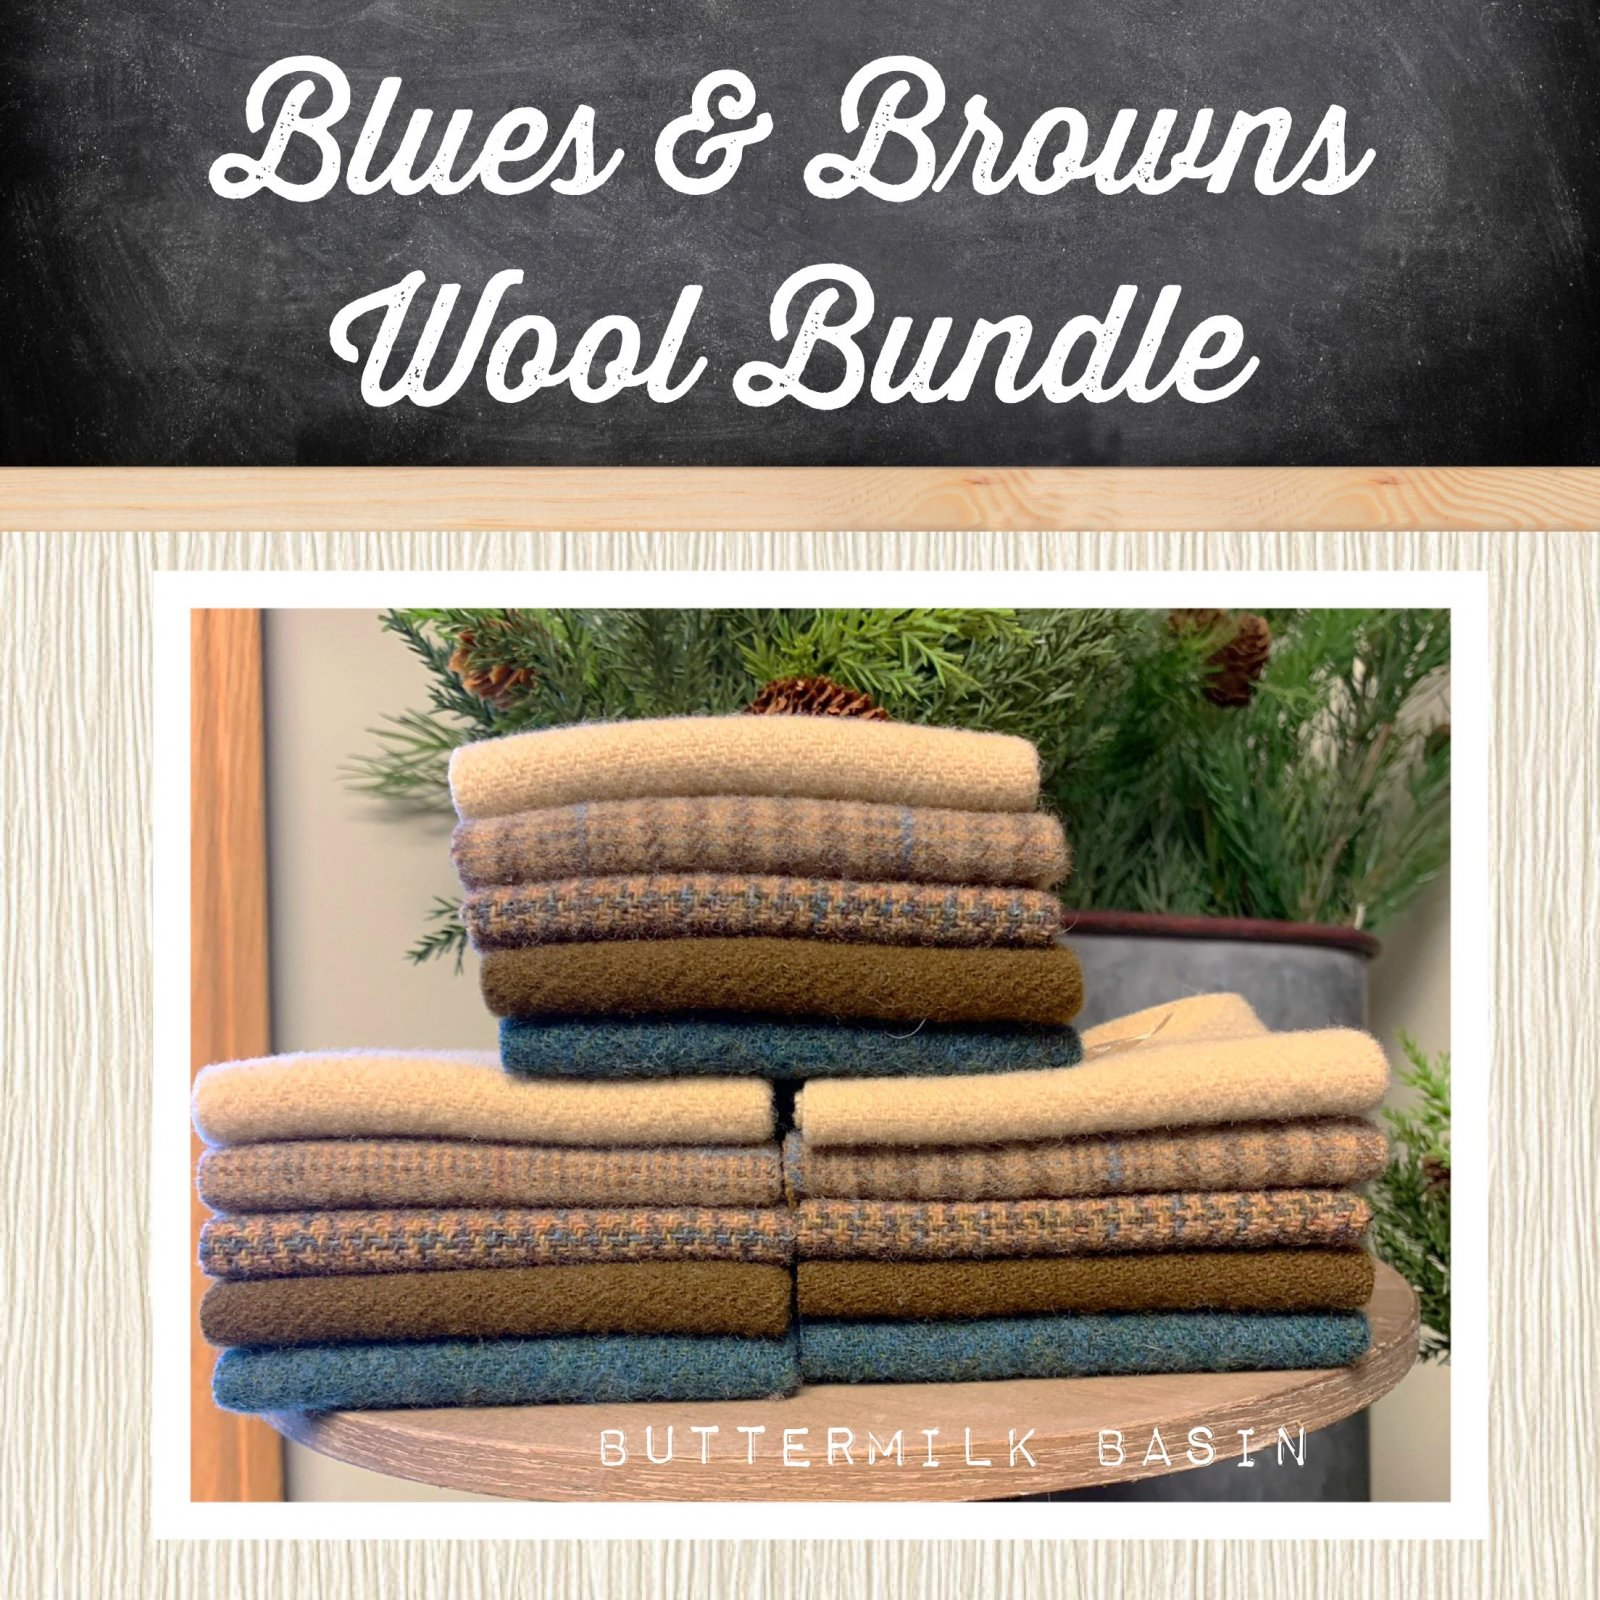 Blues & Browns Wool Bundle